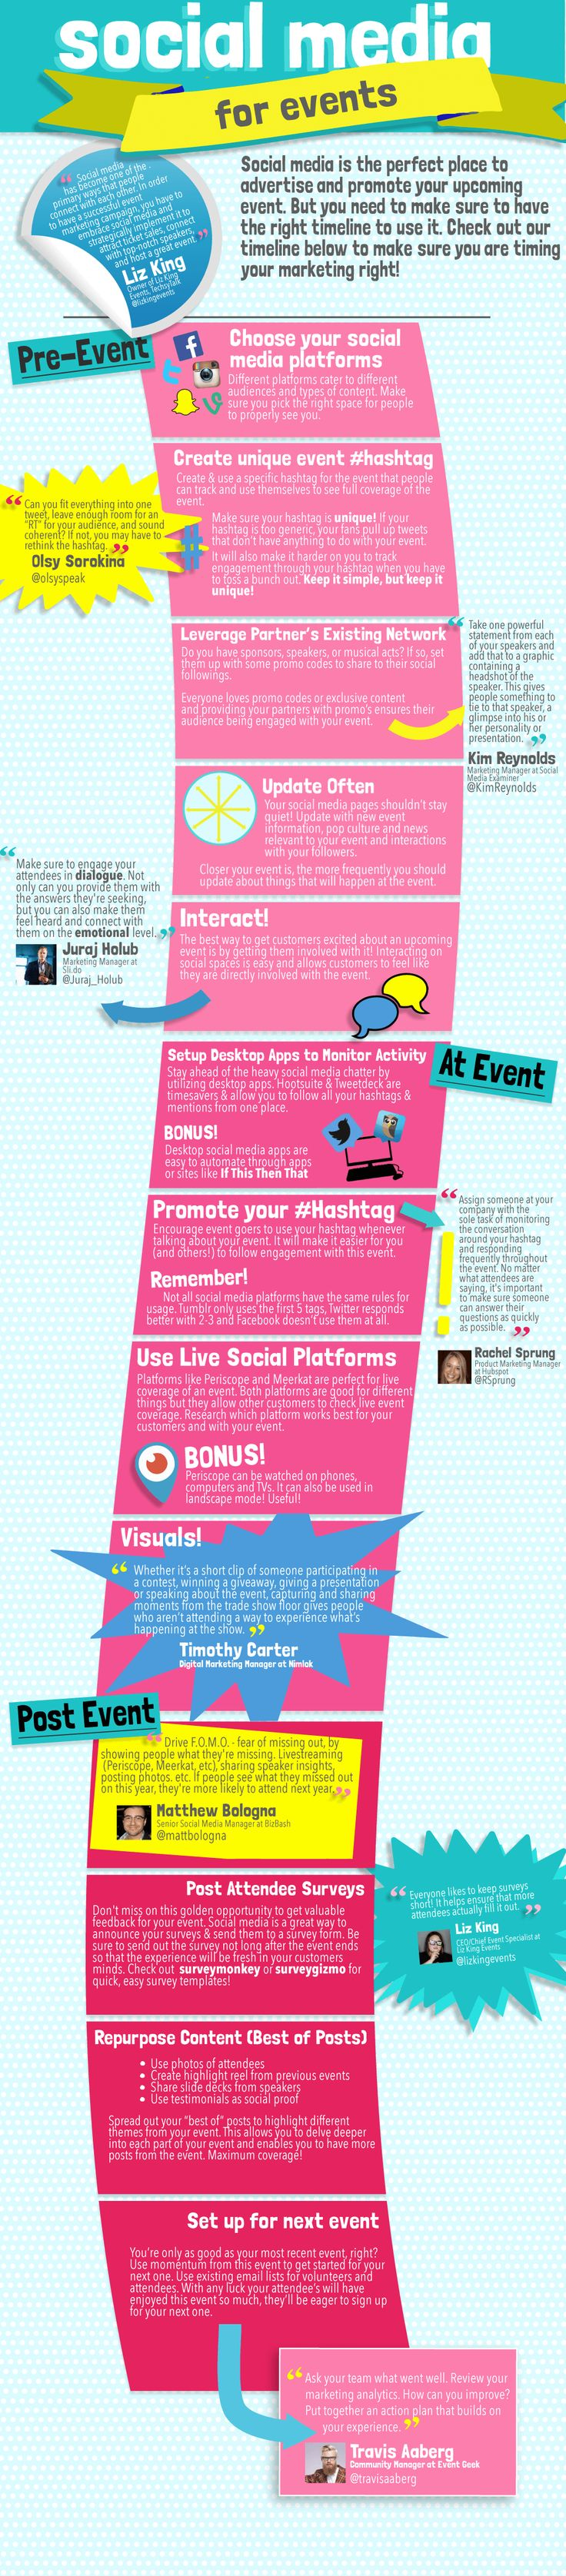 Social Media for Events Timeline Infographic